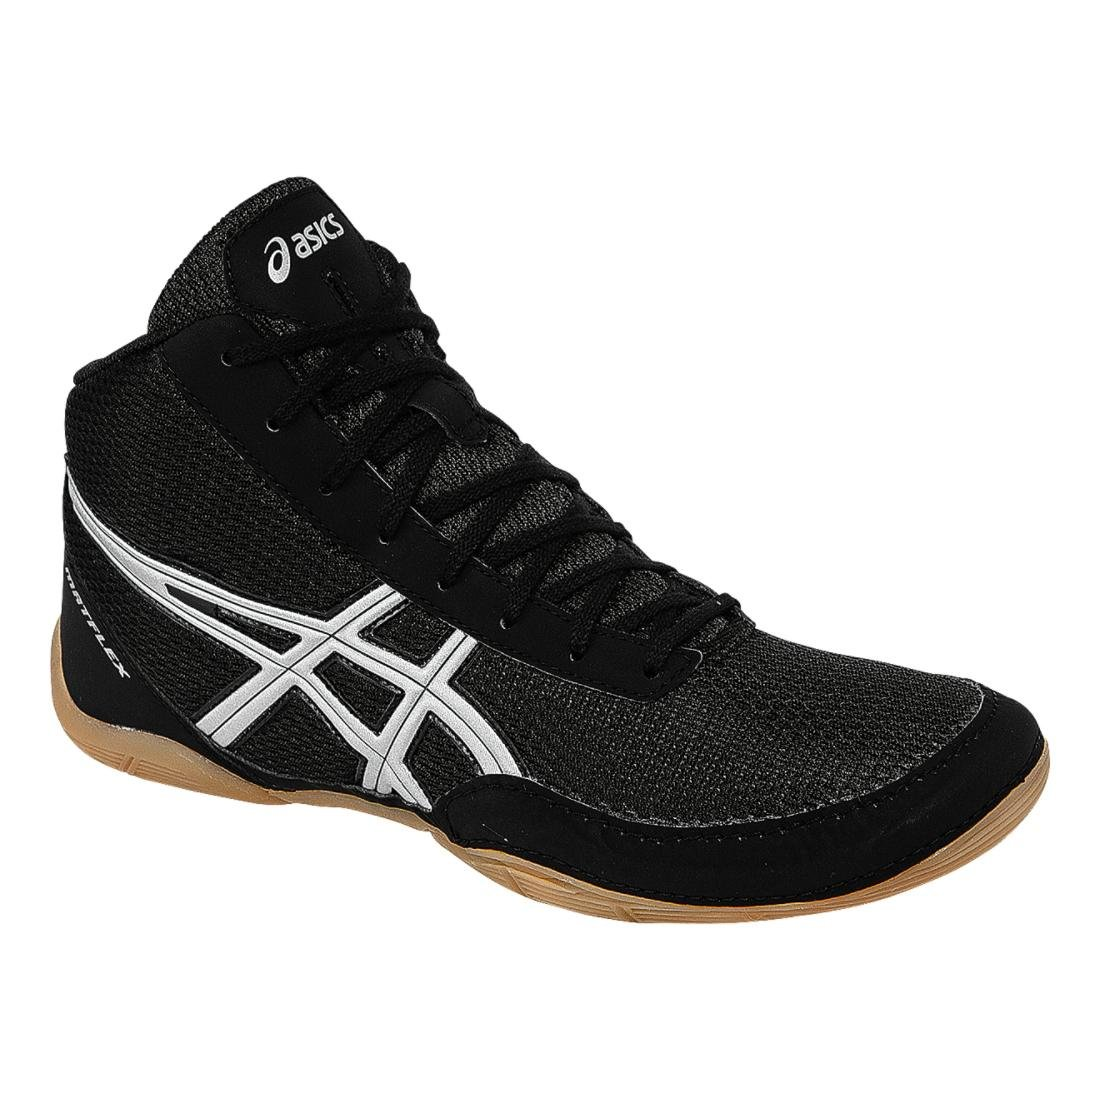 ASICS Men's Matflex 5 Wrestling Shoe, Black/Silver, 7 M US by ASICS